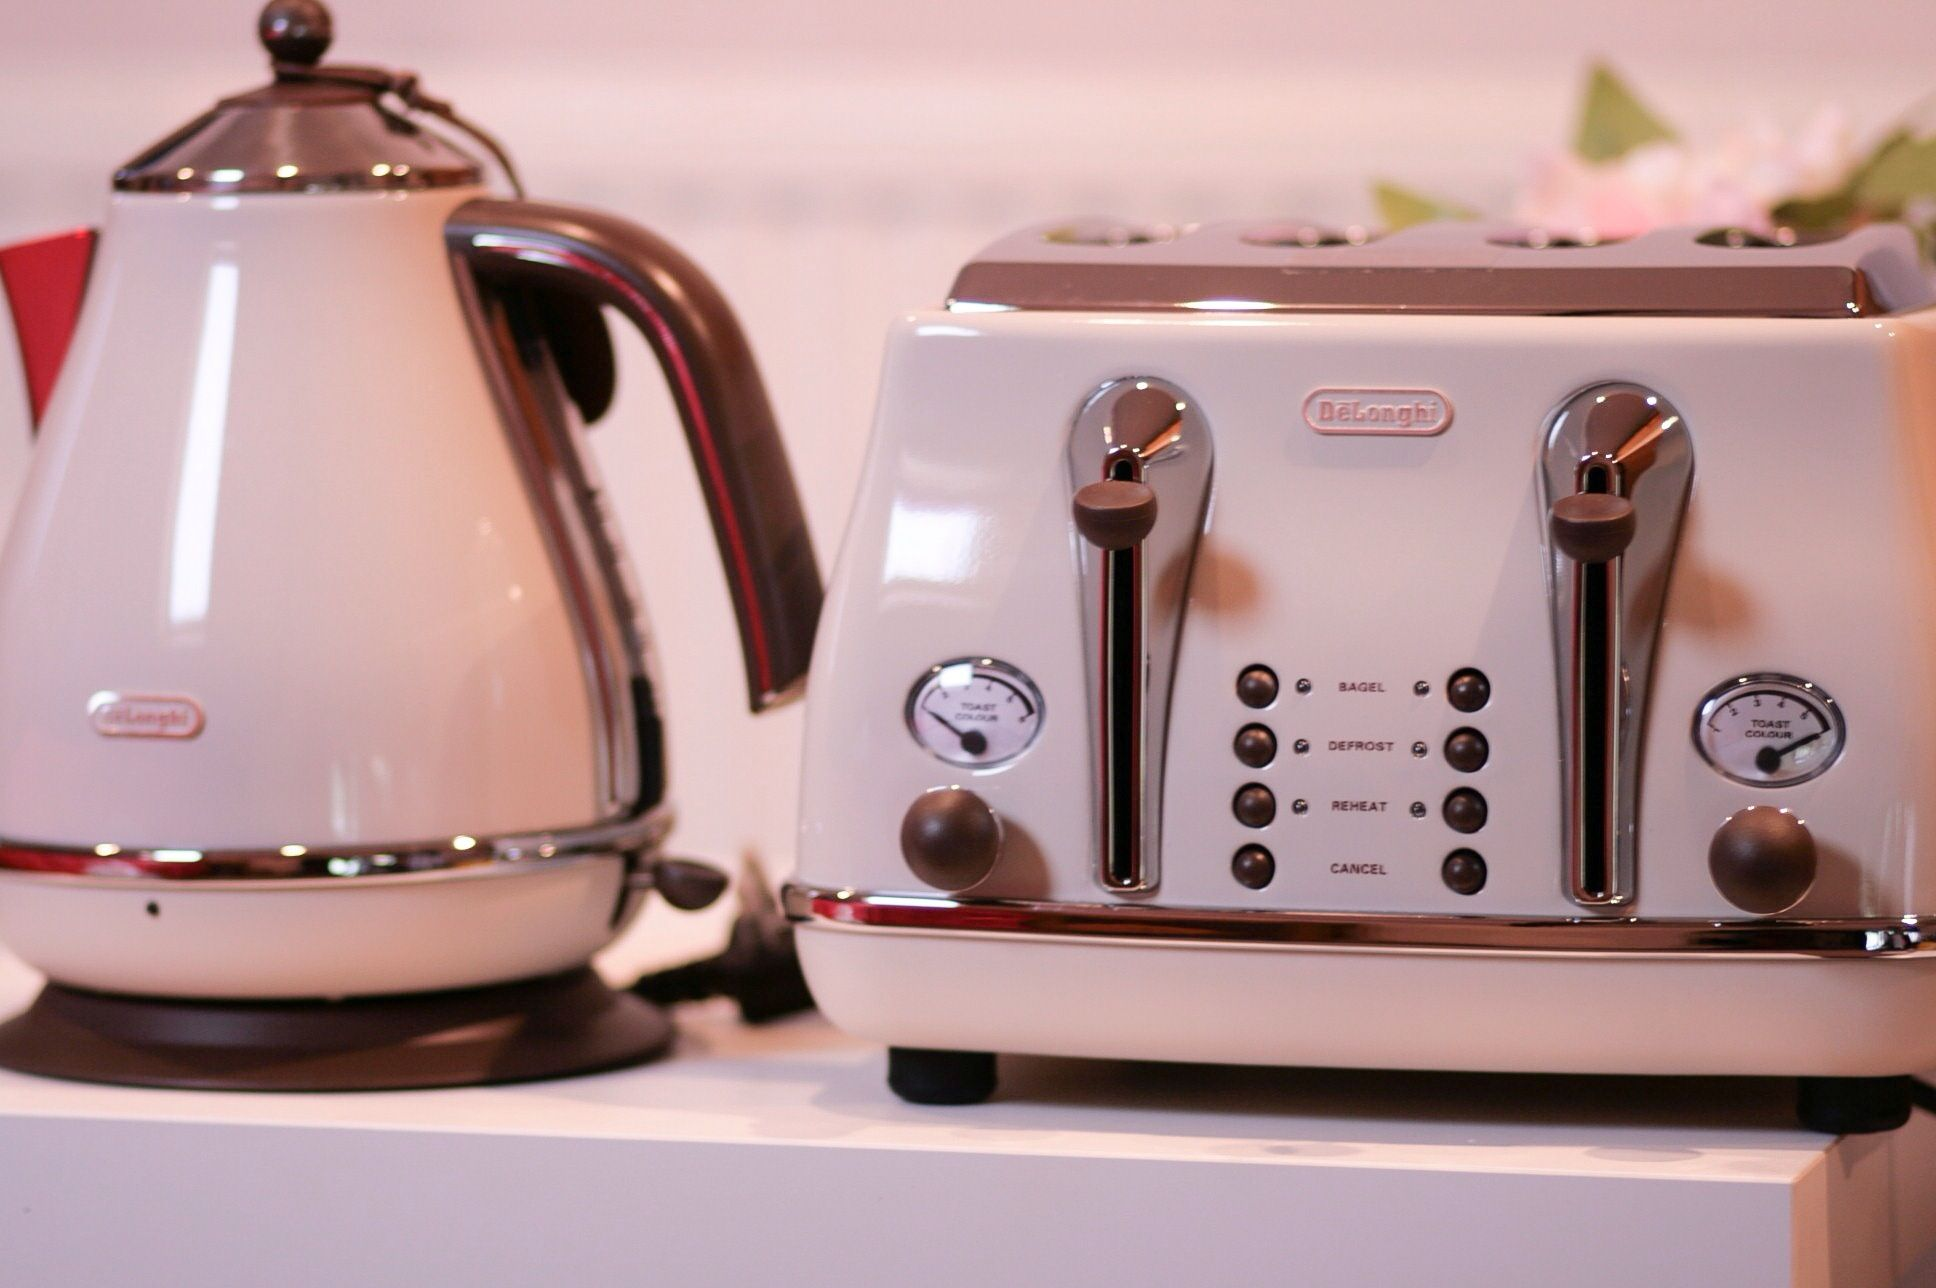 WANT IT Delonghi Vintage Icona Toaster & Tea Kettle (I